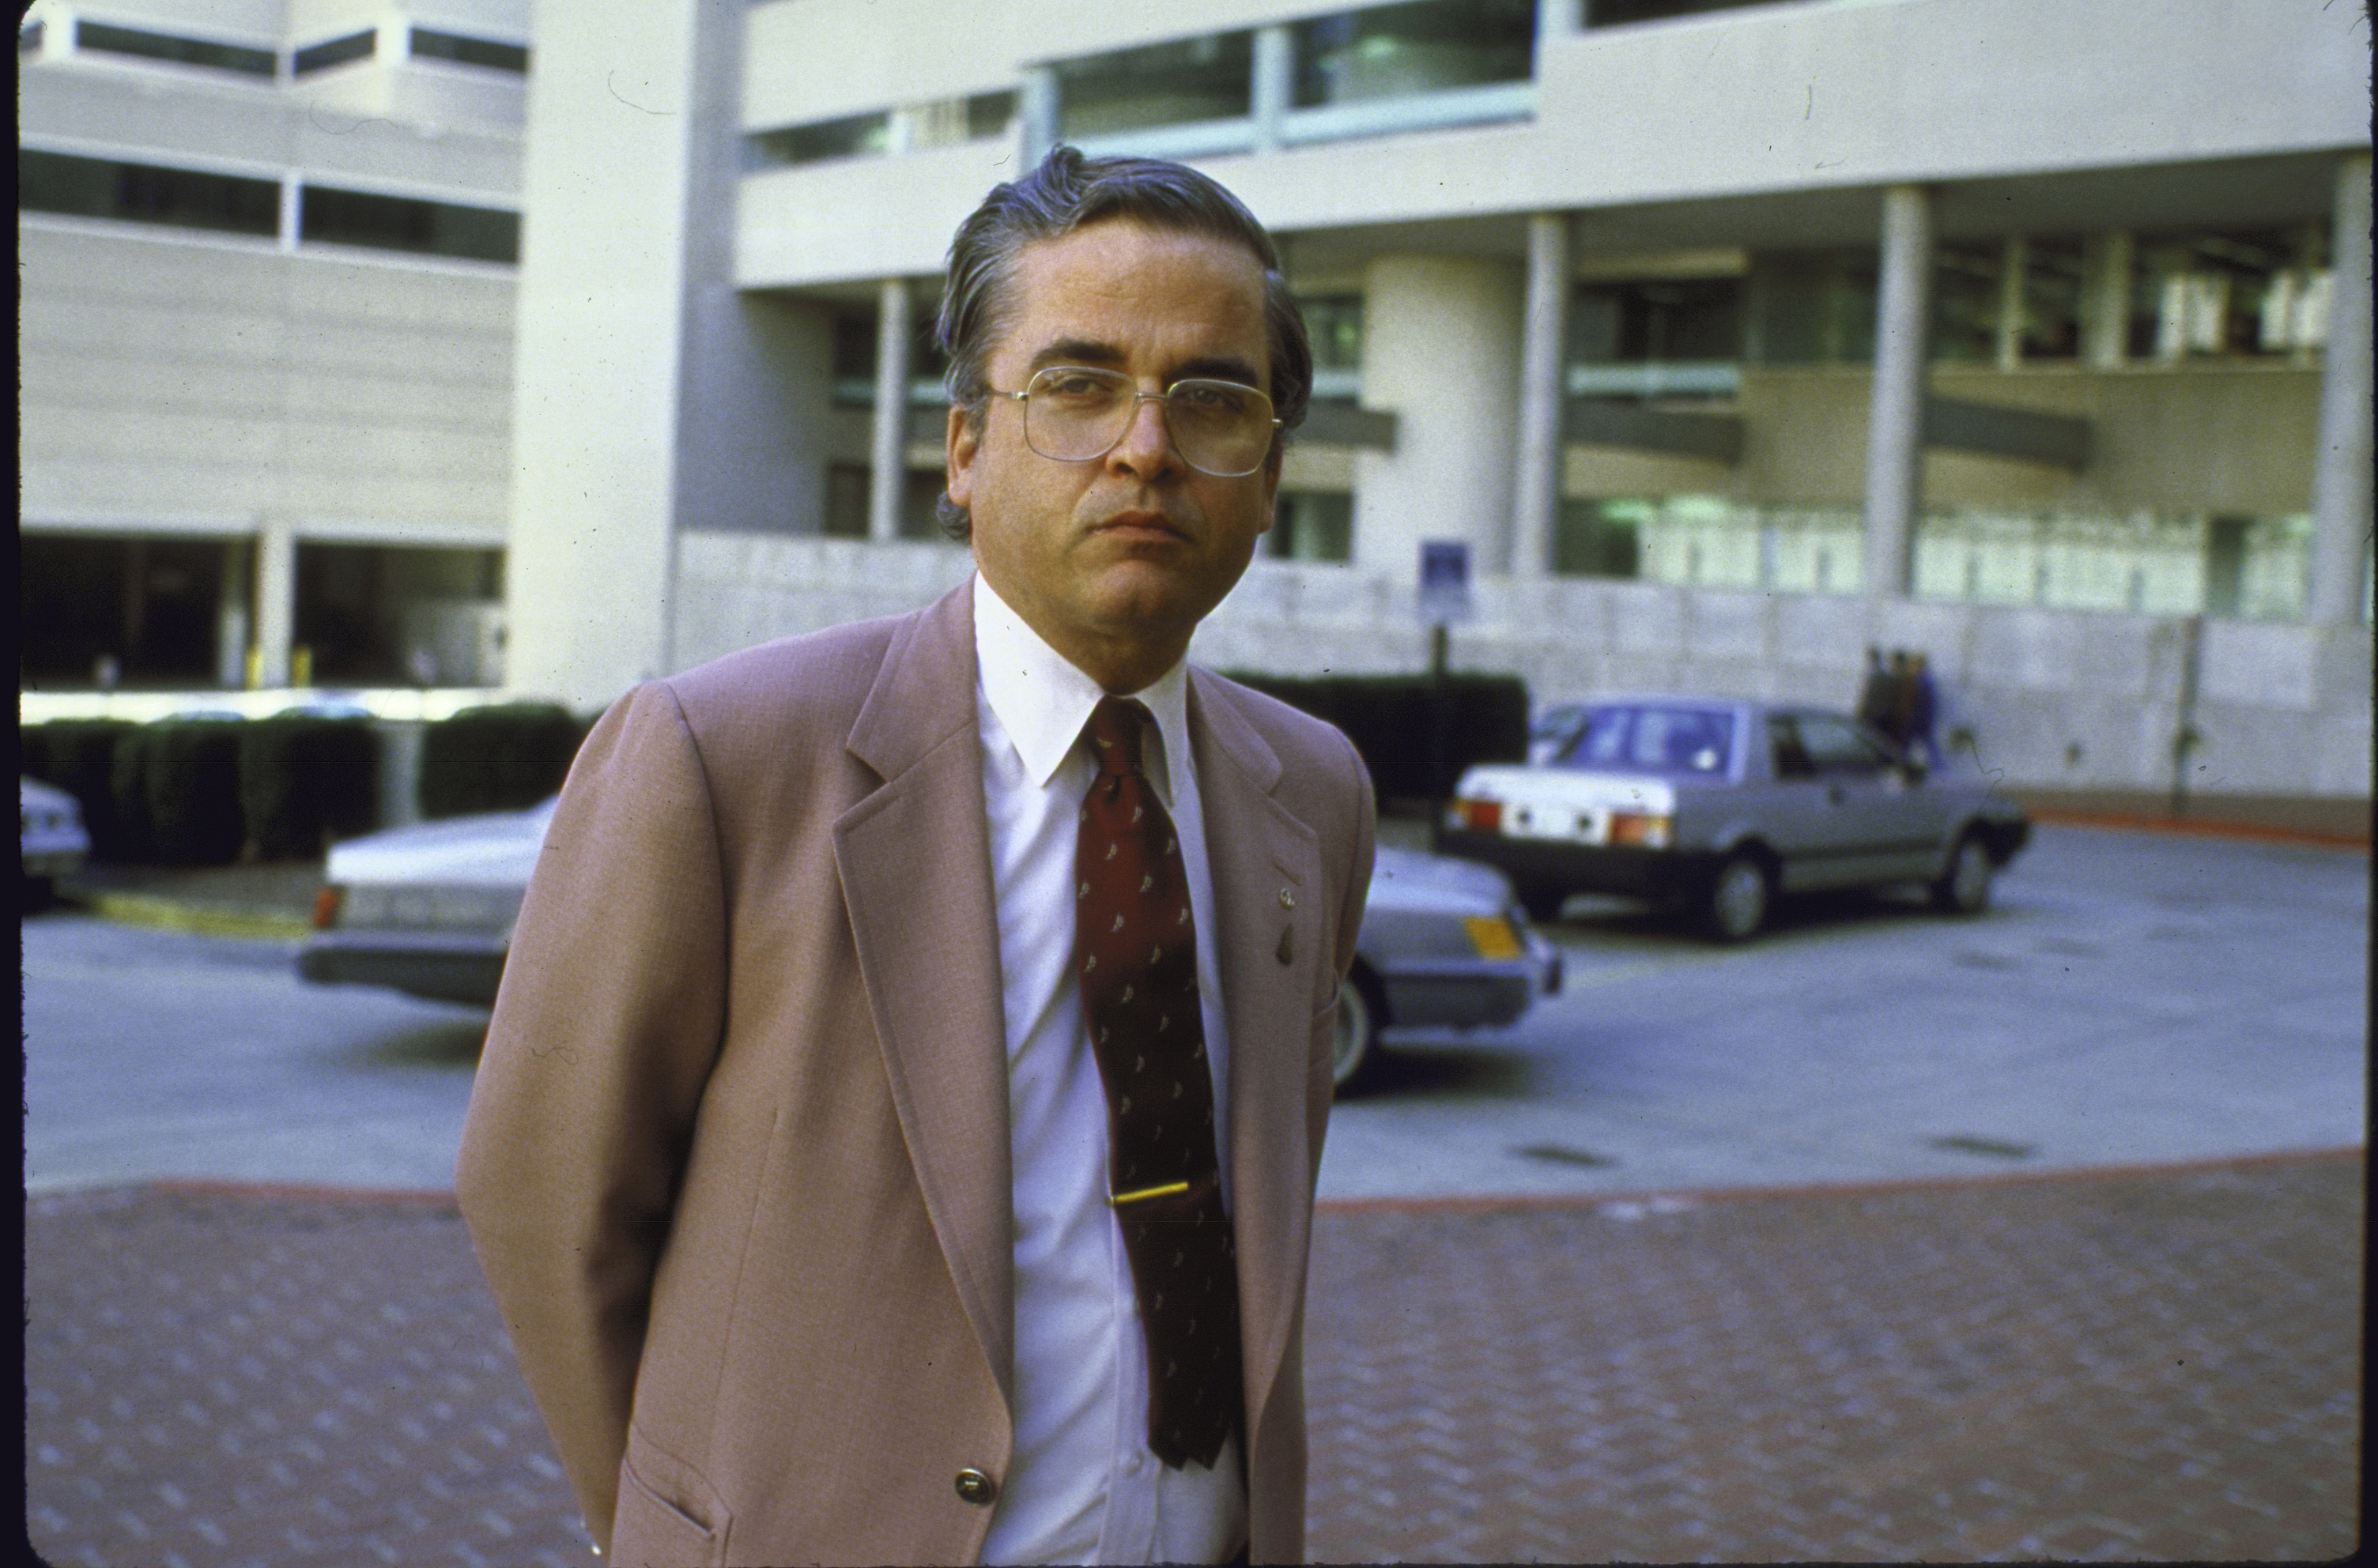 This 1985 file photo shows Samuel Loring Morison, after he was found guilty under Espionage Act of selling photos to Jane's Defense Weekly.